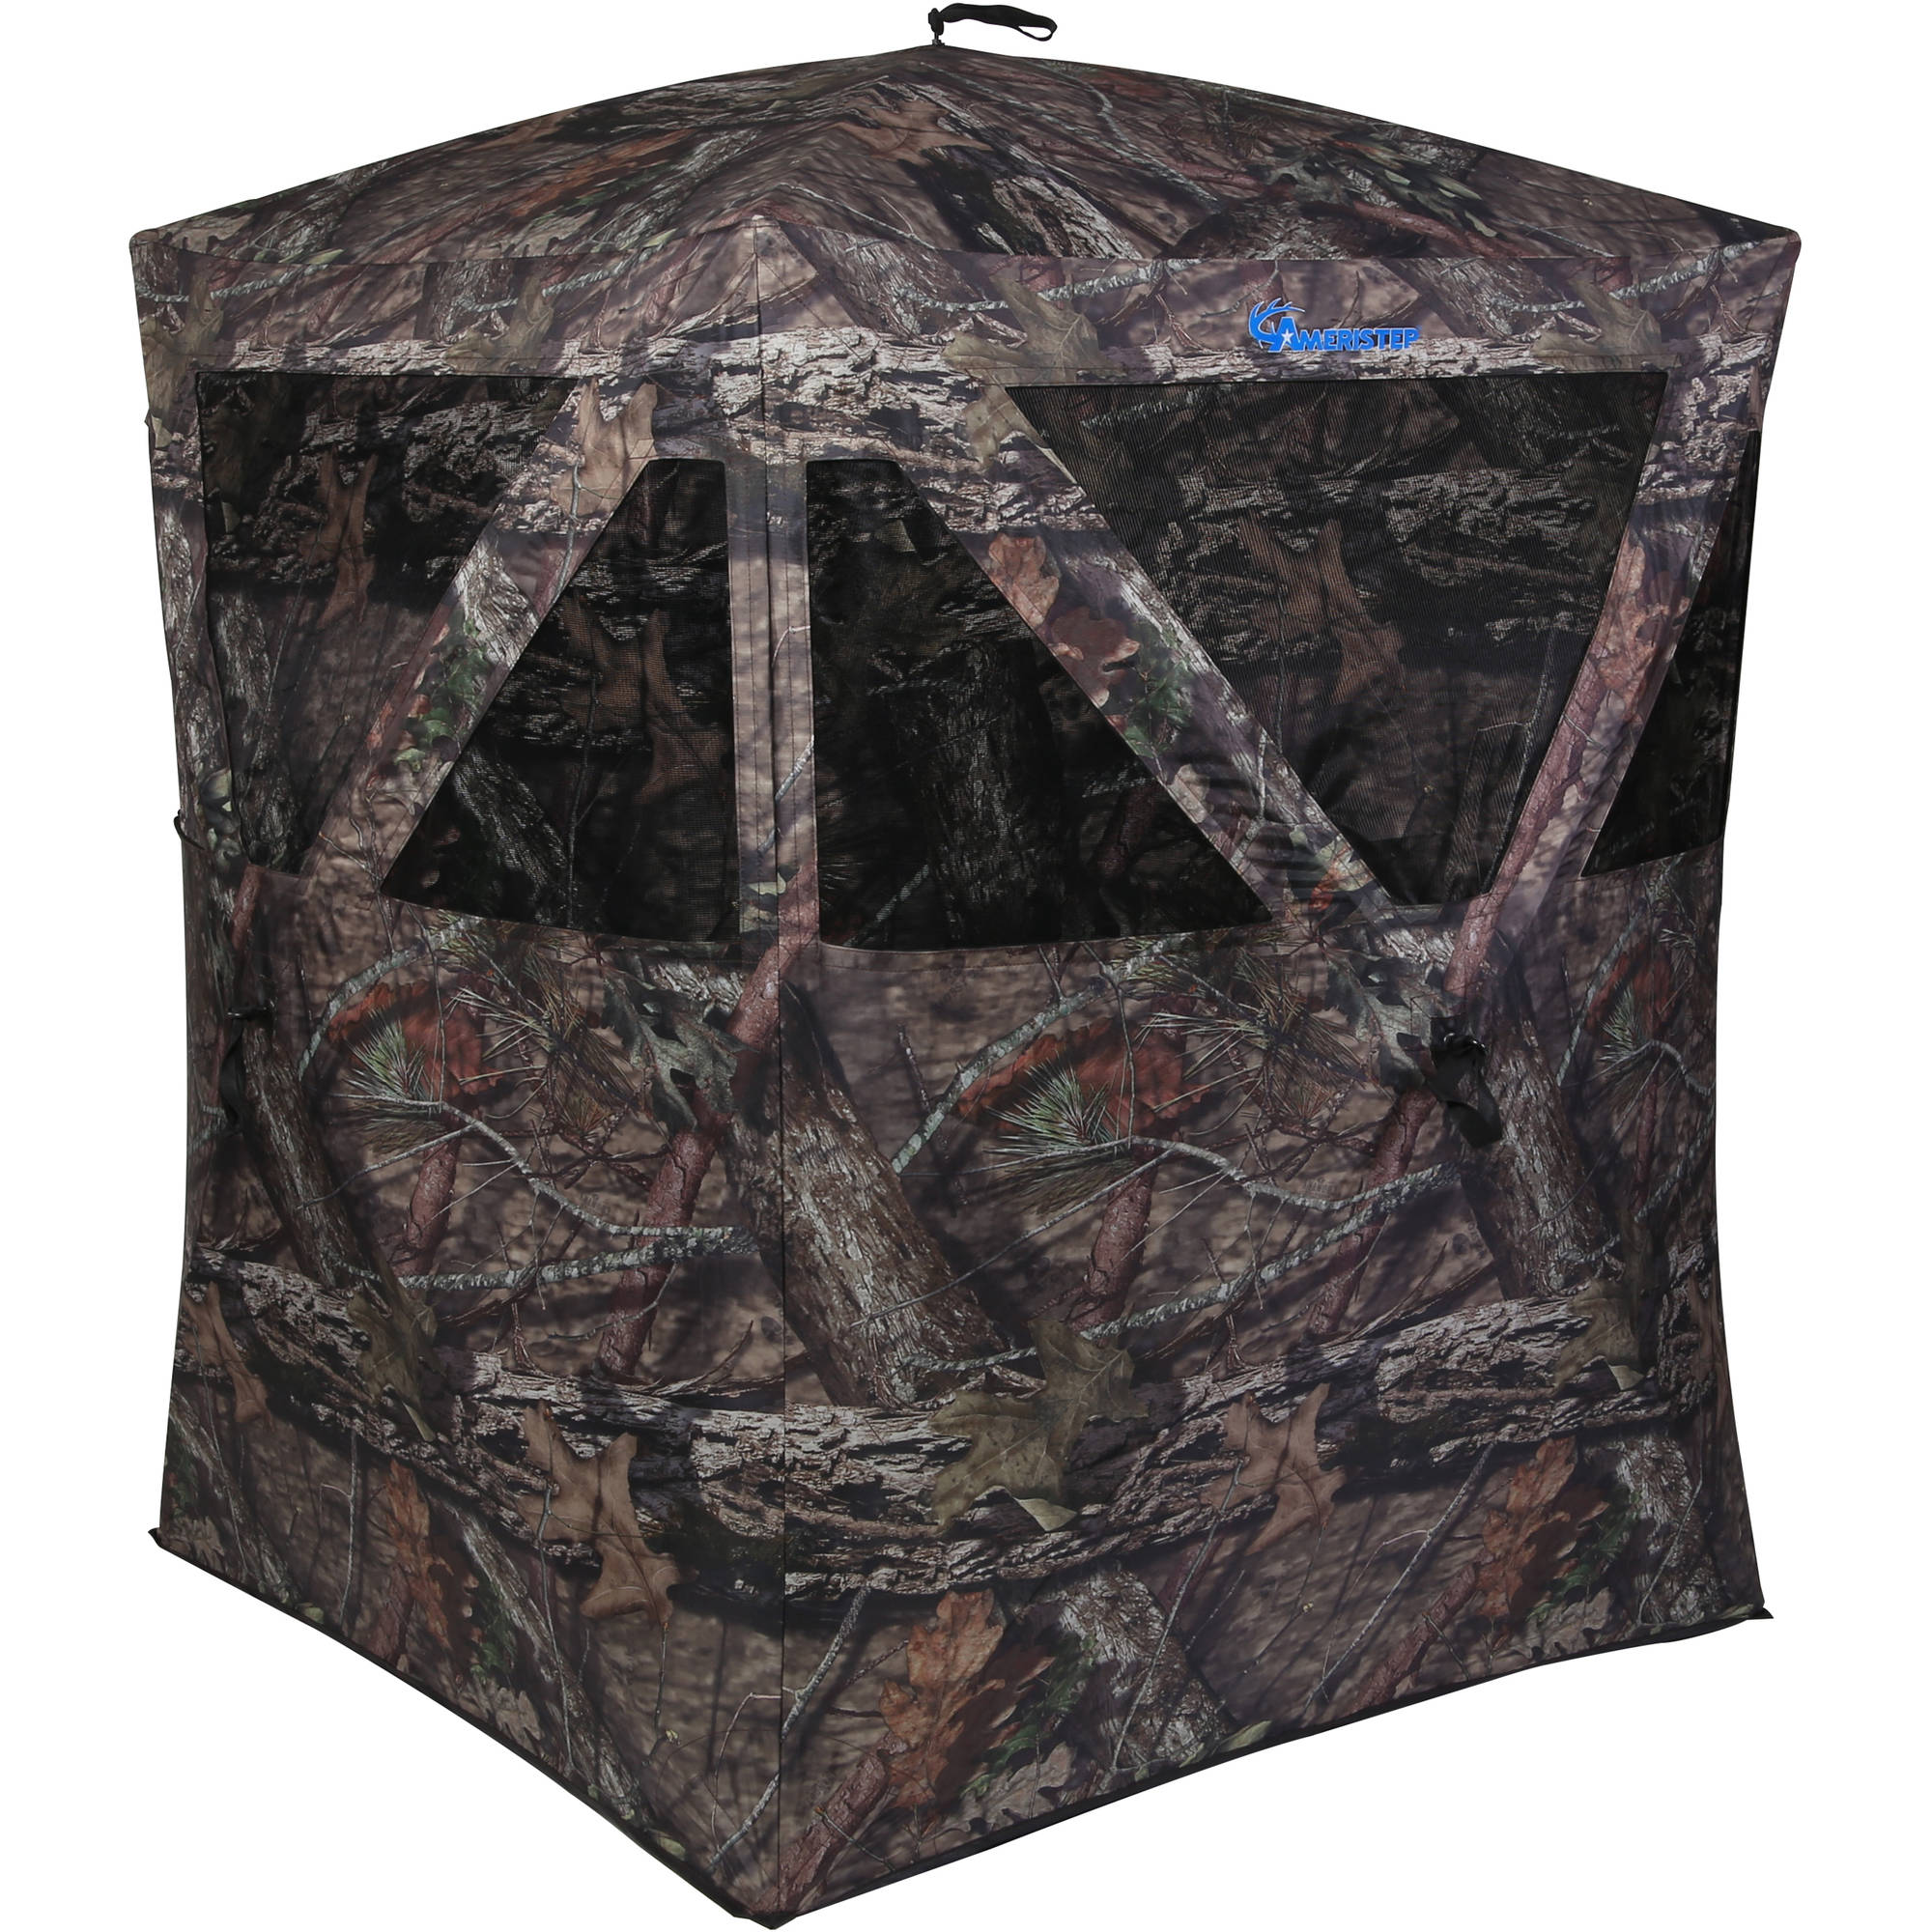 Backwoods Hunting Blind, Mossy Oak Camouflage Pattern by Ameristep